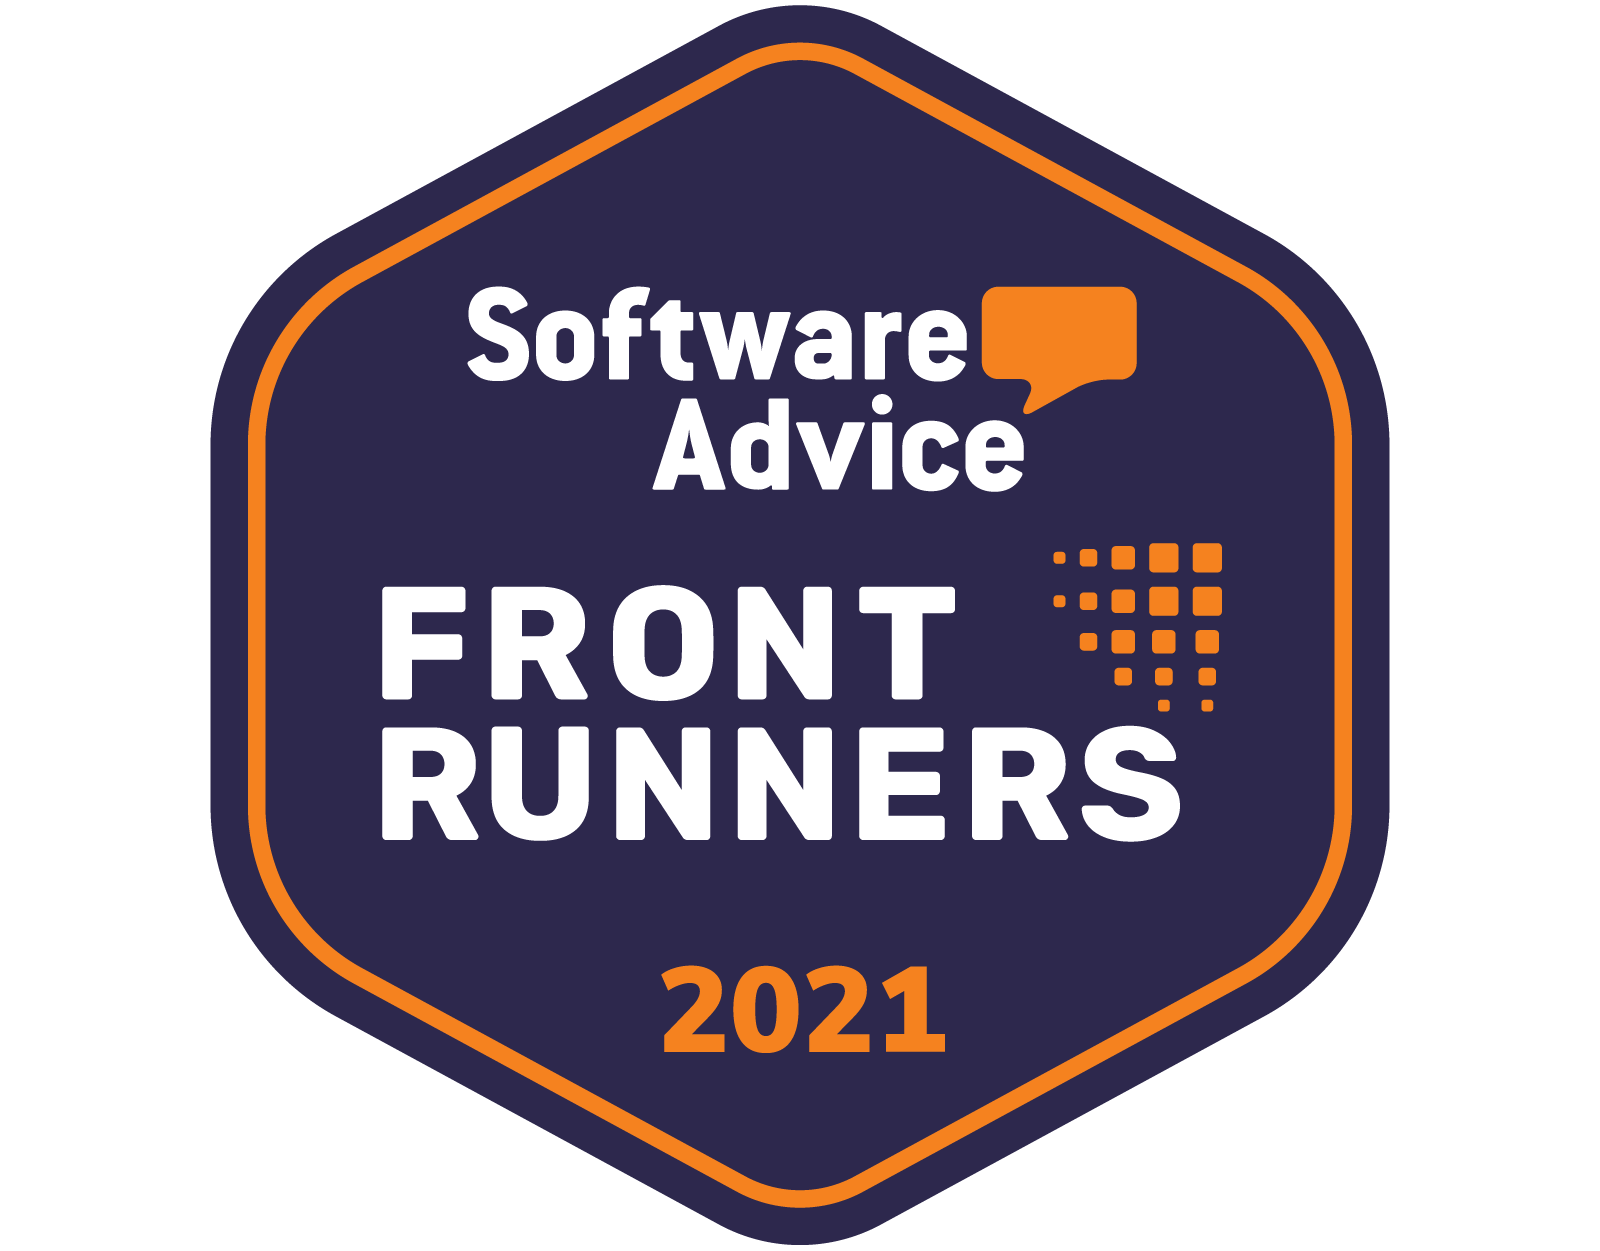 Software Advice Frontrunners for Fundraising Feb-21